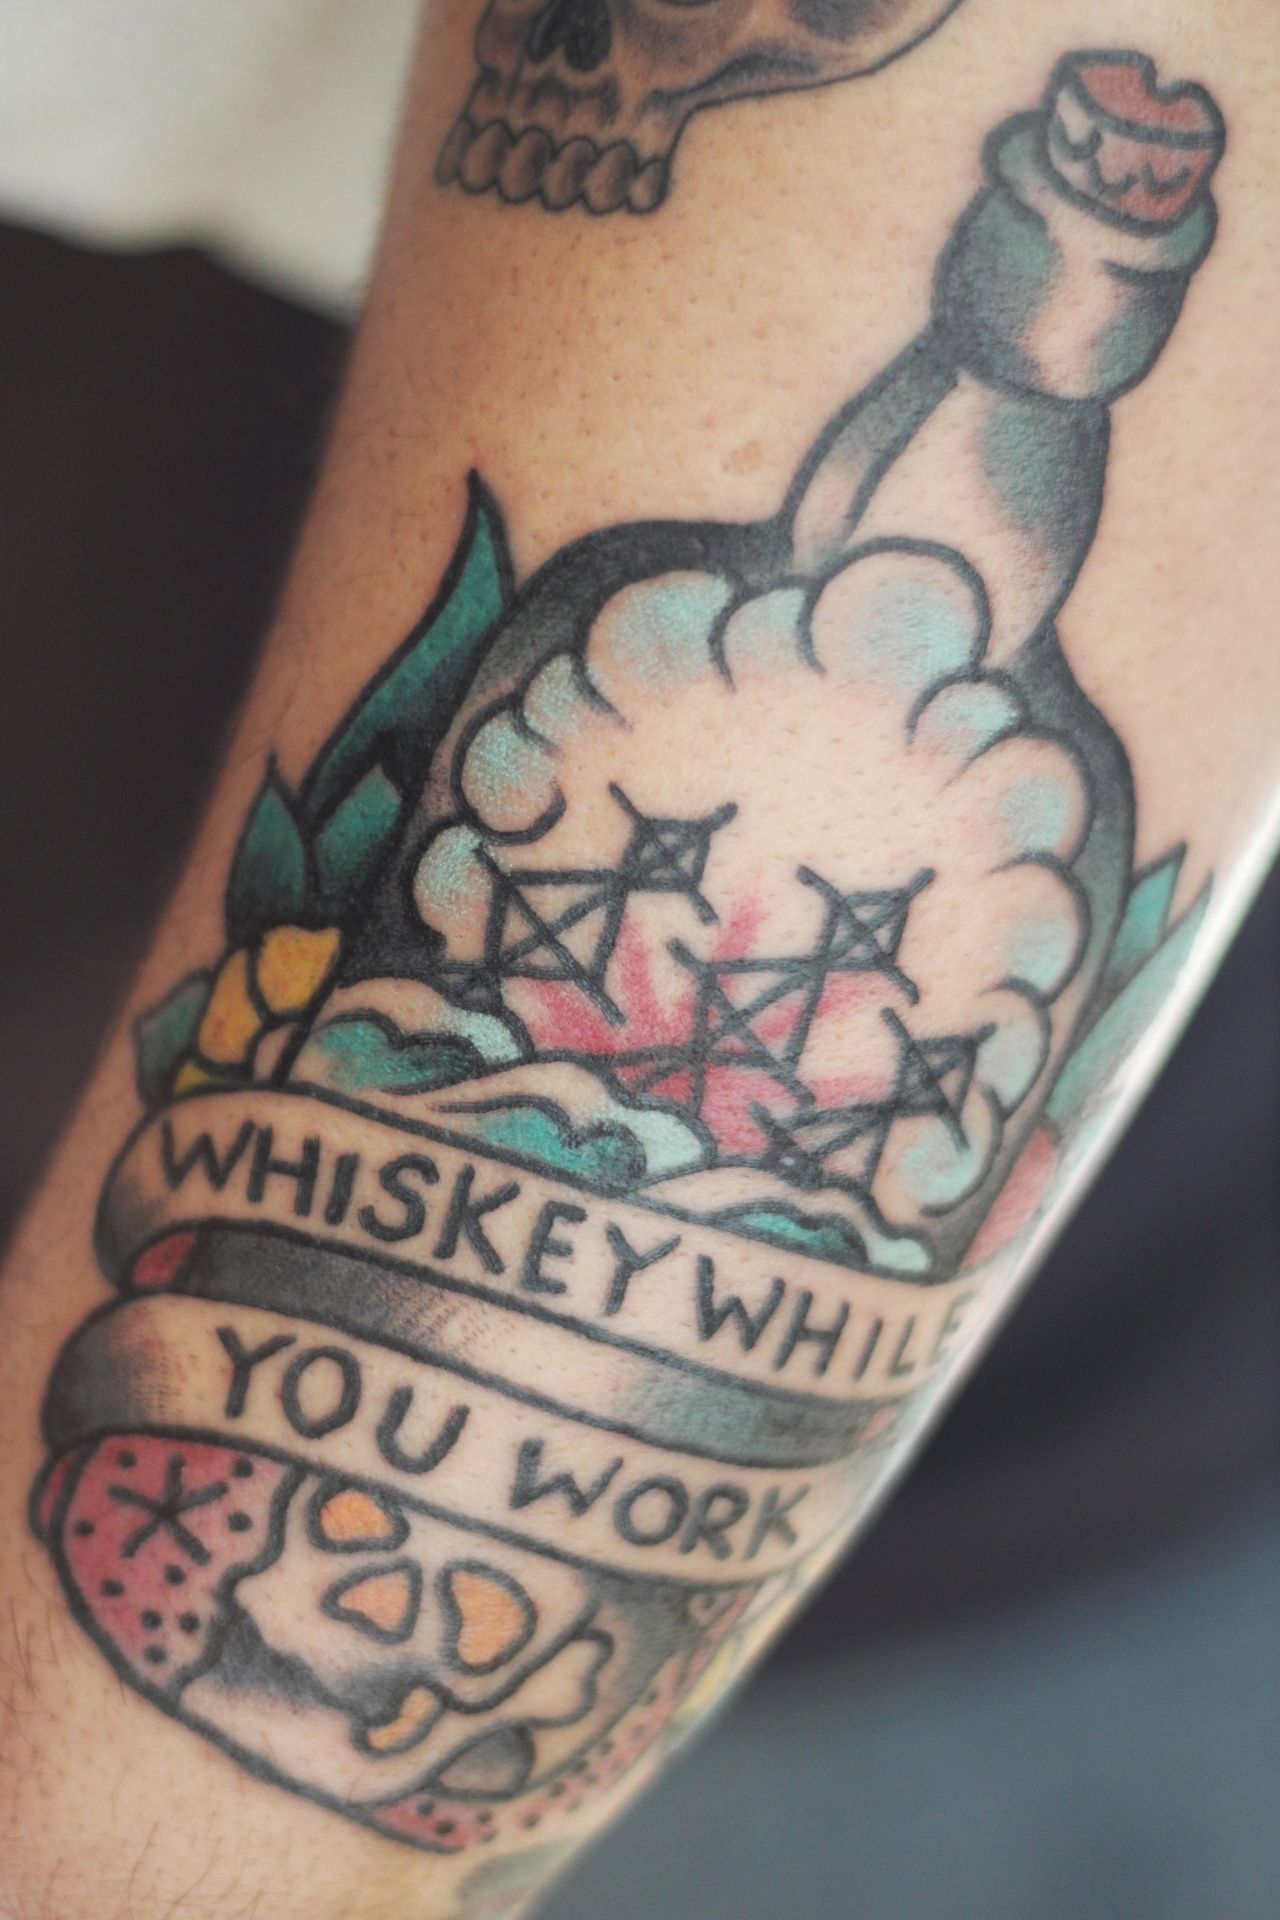 Whiskey While You Work